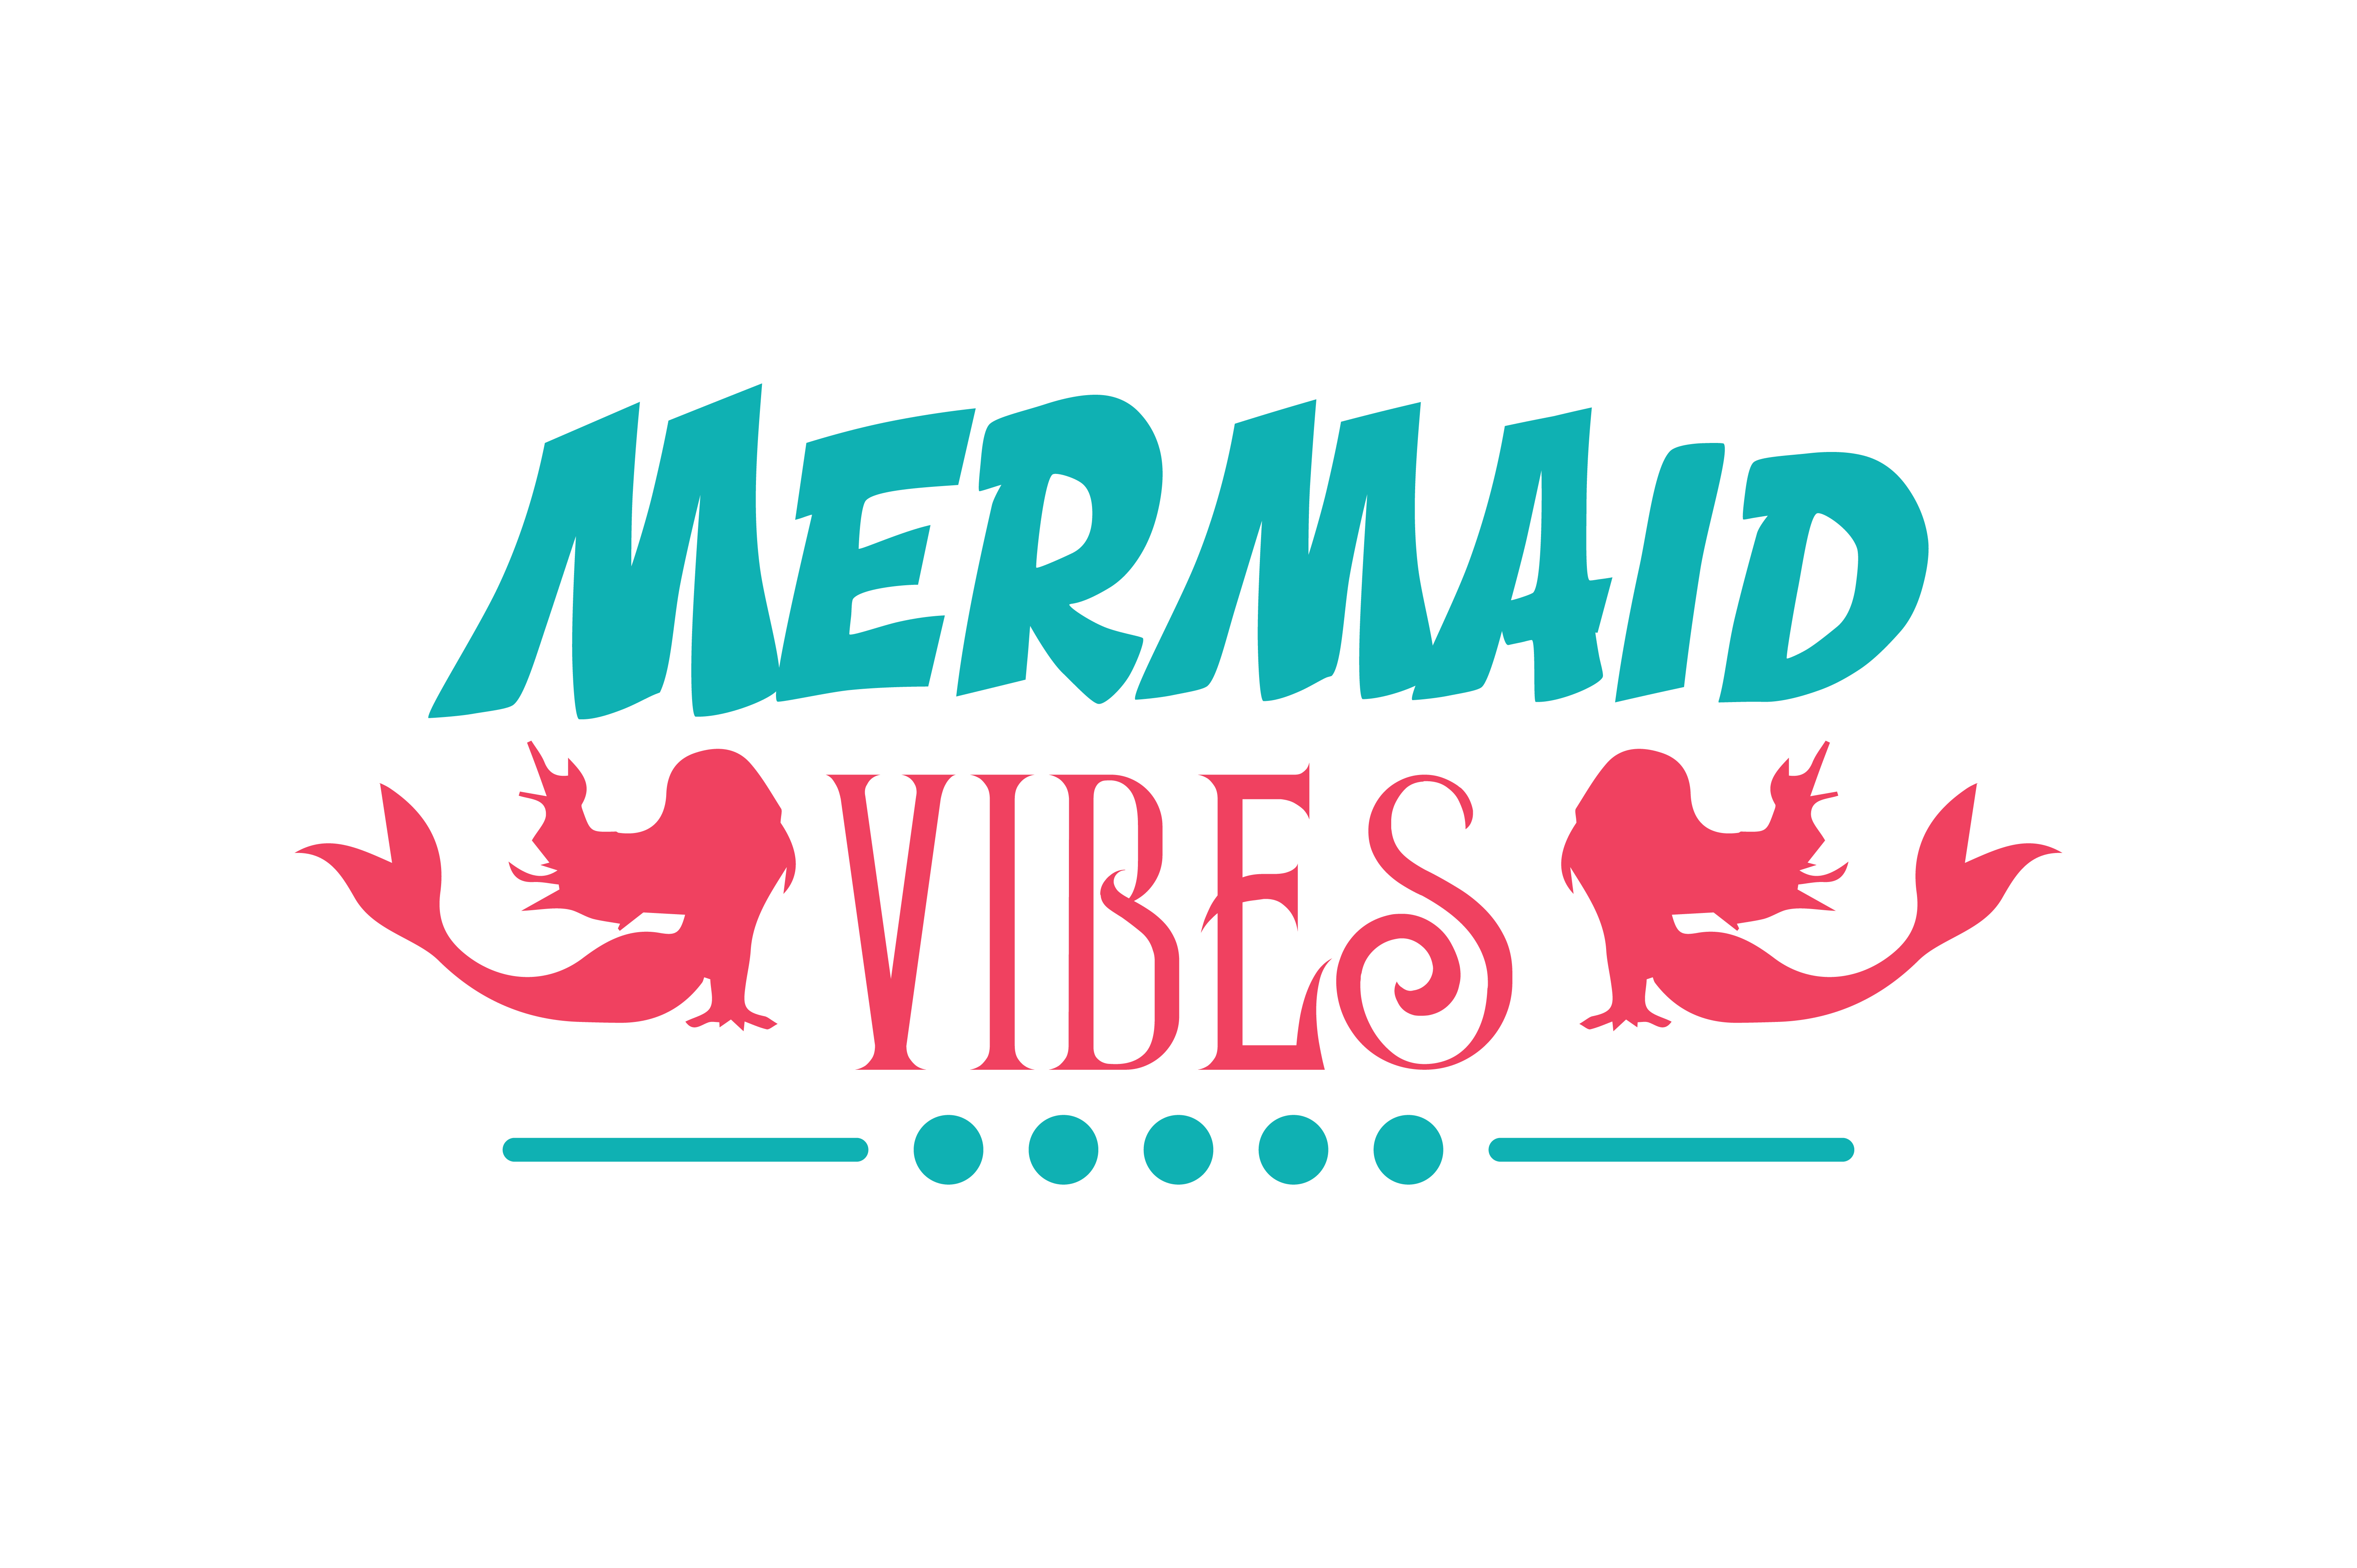 Download Free Mermaid Vibes Quote Svg Cut Graphic By Thelucky Creative Fabrica for Cricut Explore, Silhouette and other cutting machines.